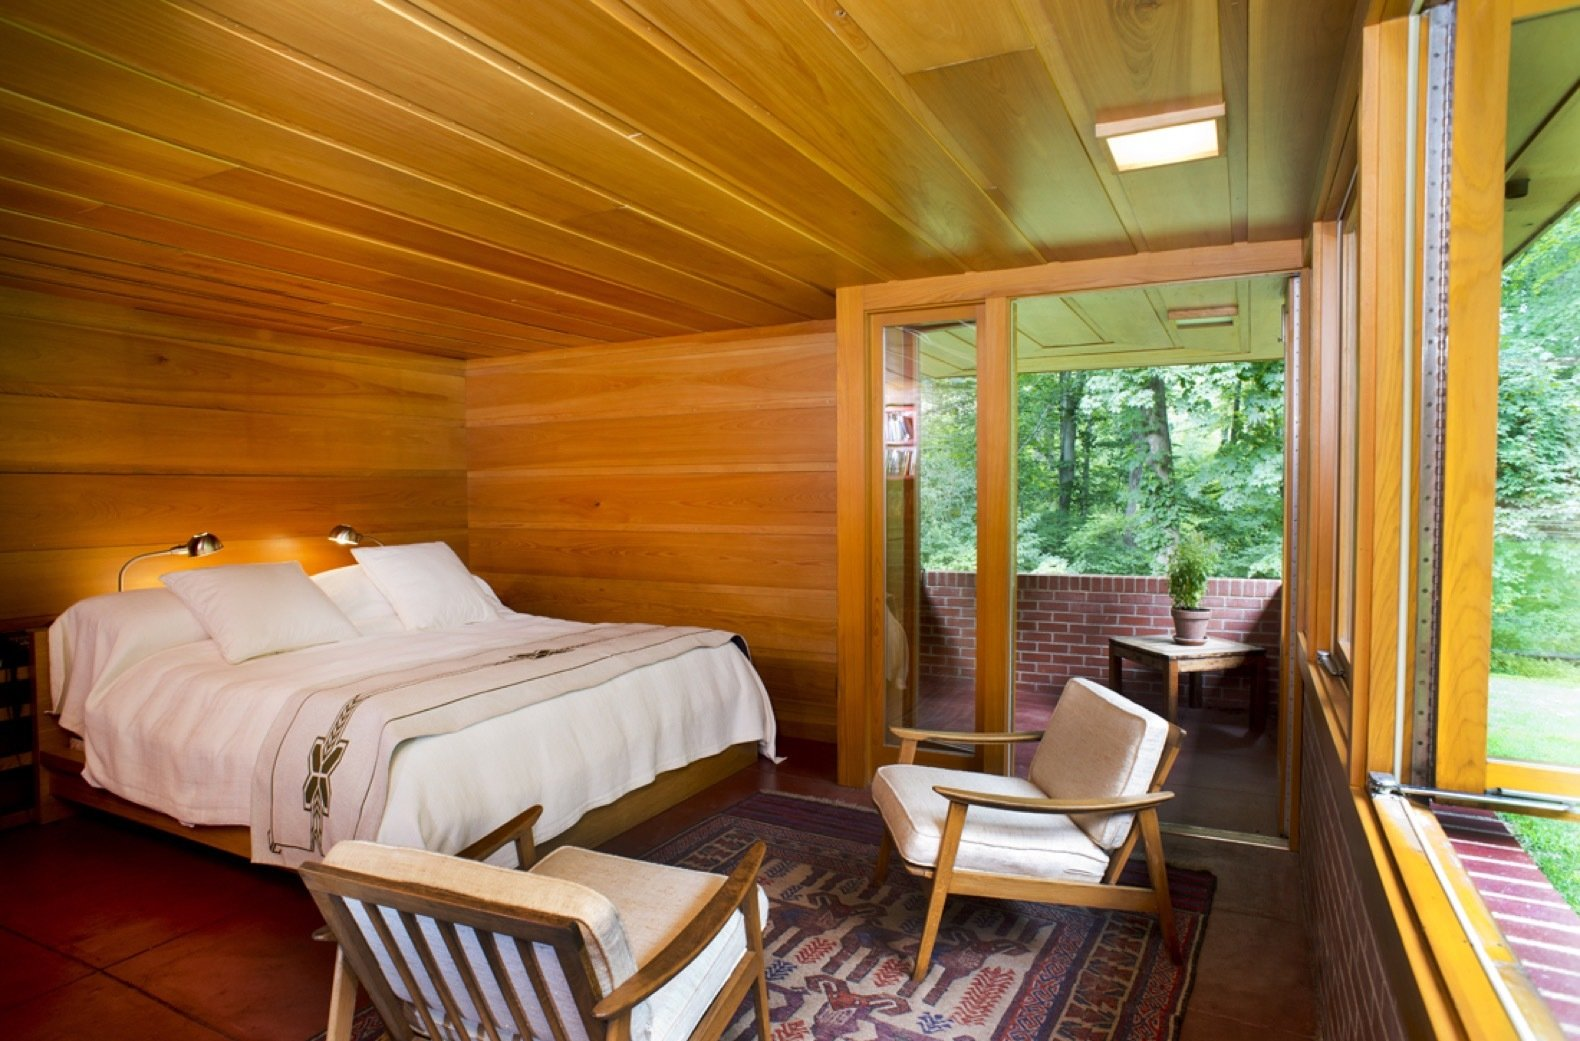 Bedroom, Table, Bed, Concrete, Ceiling, and Chair The master bedroom suite realized by Tarantino Architect opens up to an enclosed brick patio.  Best Bedroom Concrete Chair Photos from New Jersey's Oldest and Largest Frank Lloyd Wright House Cuts Price to $1.45M